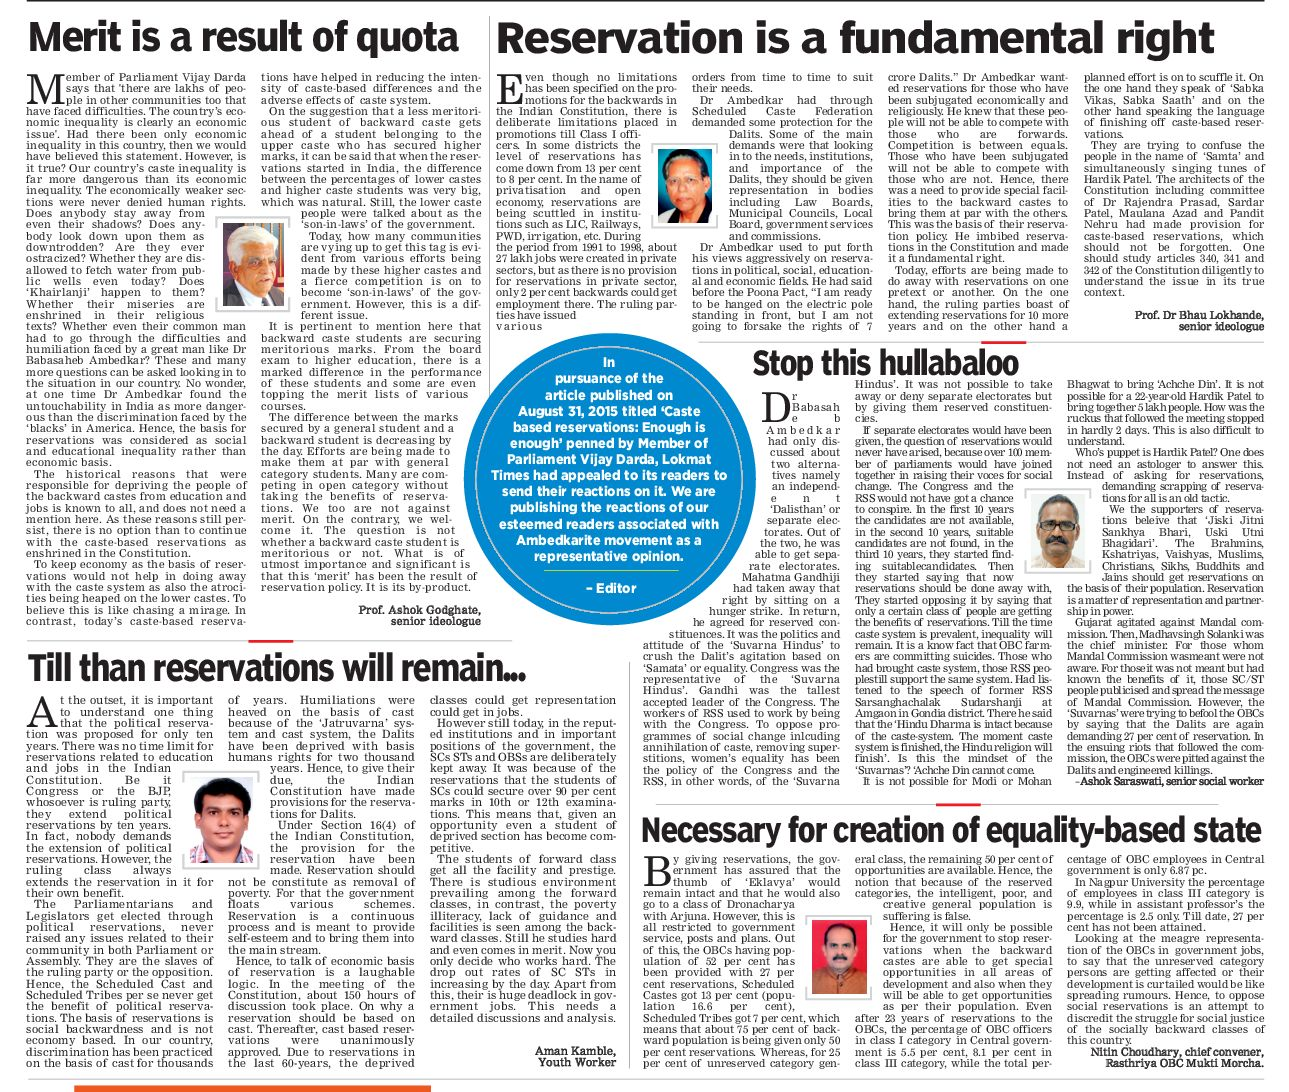 Reservation is a fundamental right